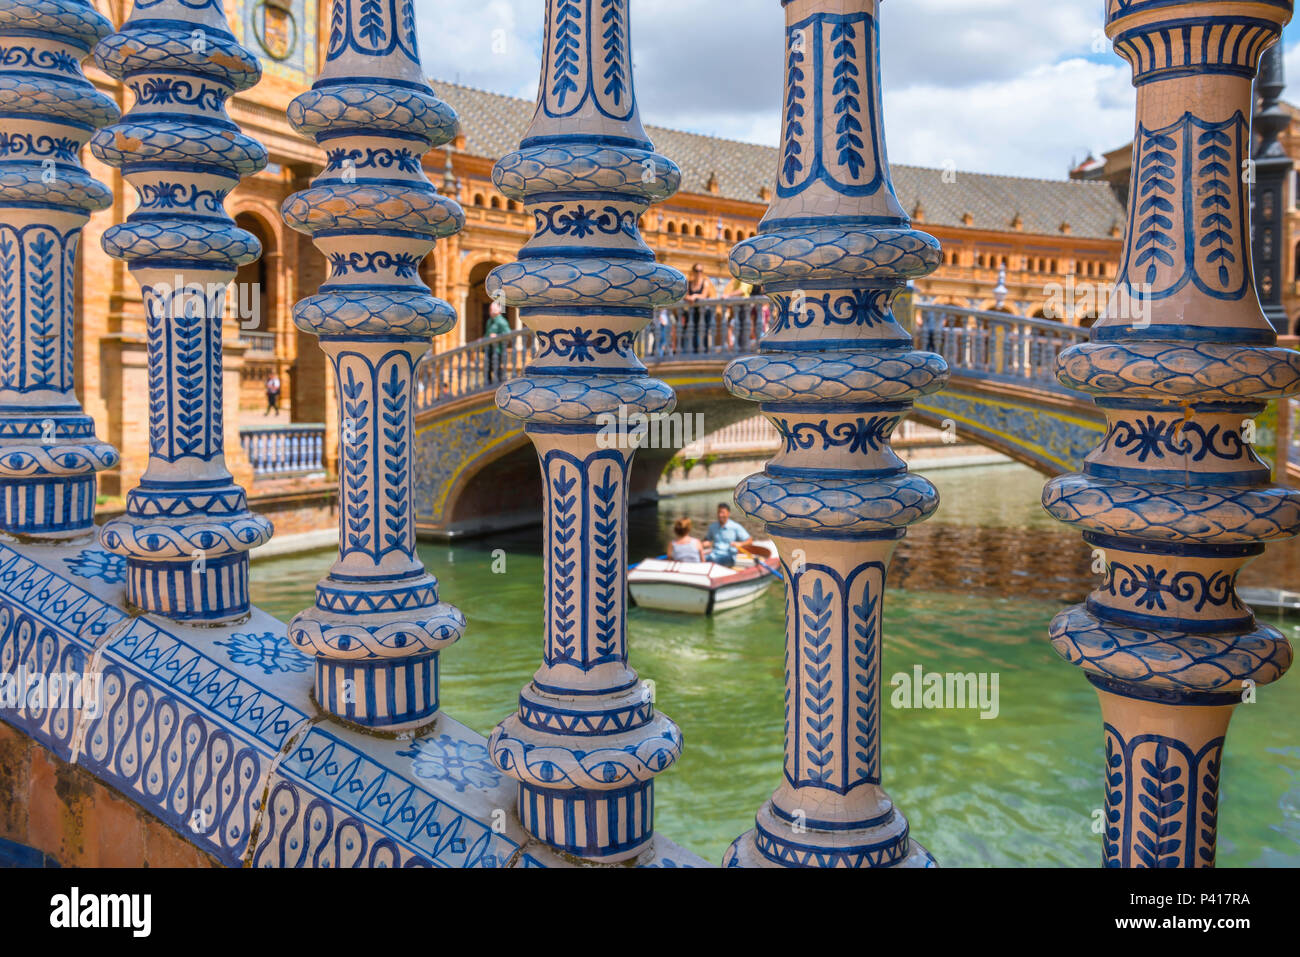 Plaza de Espana Seville, detail of the colorful ceramic balusters of a bridge spanning the lake in the Plaza de Espana, Sevilla, Andalucia, Spain. - Stock Image